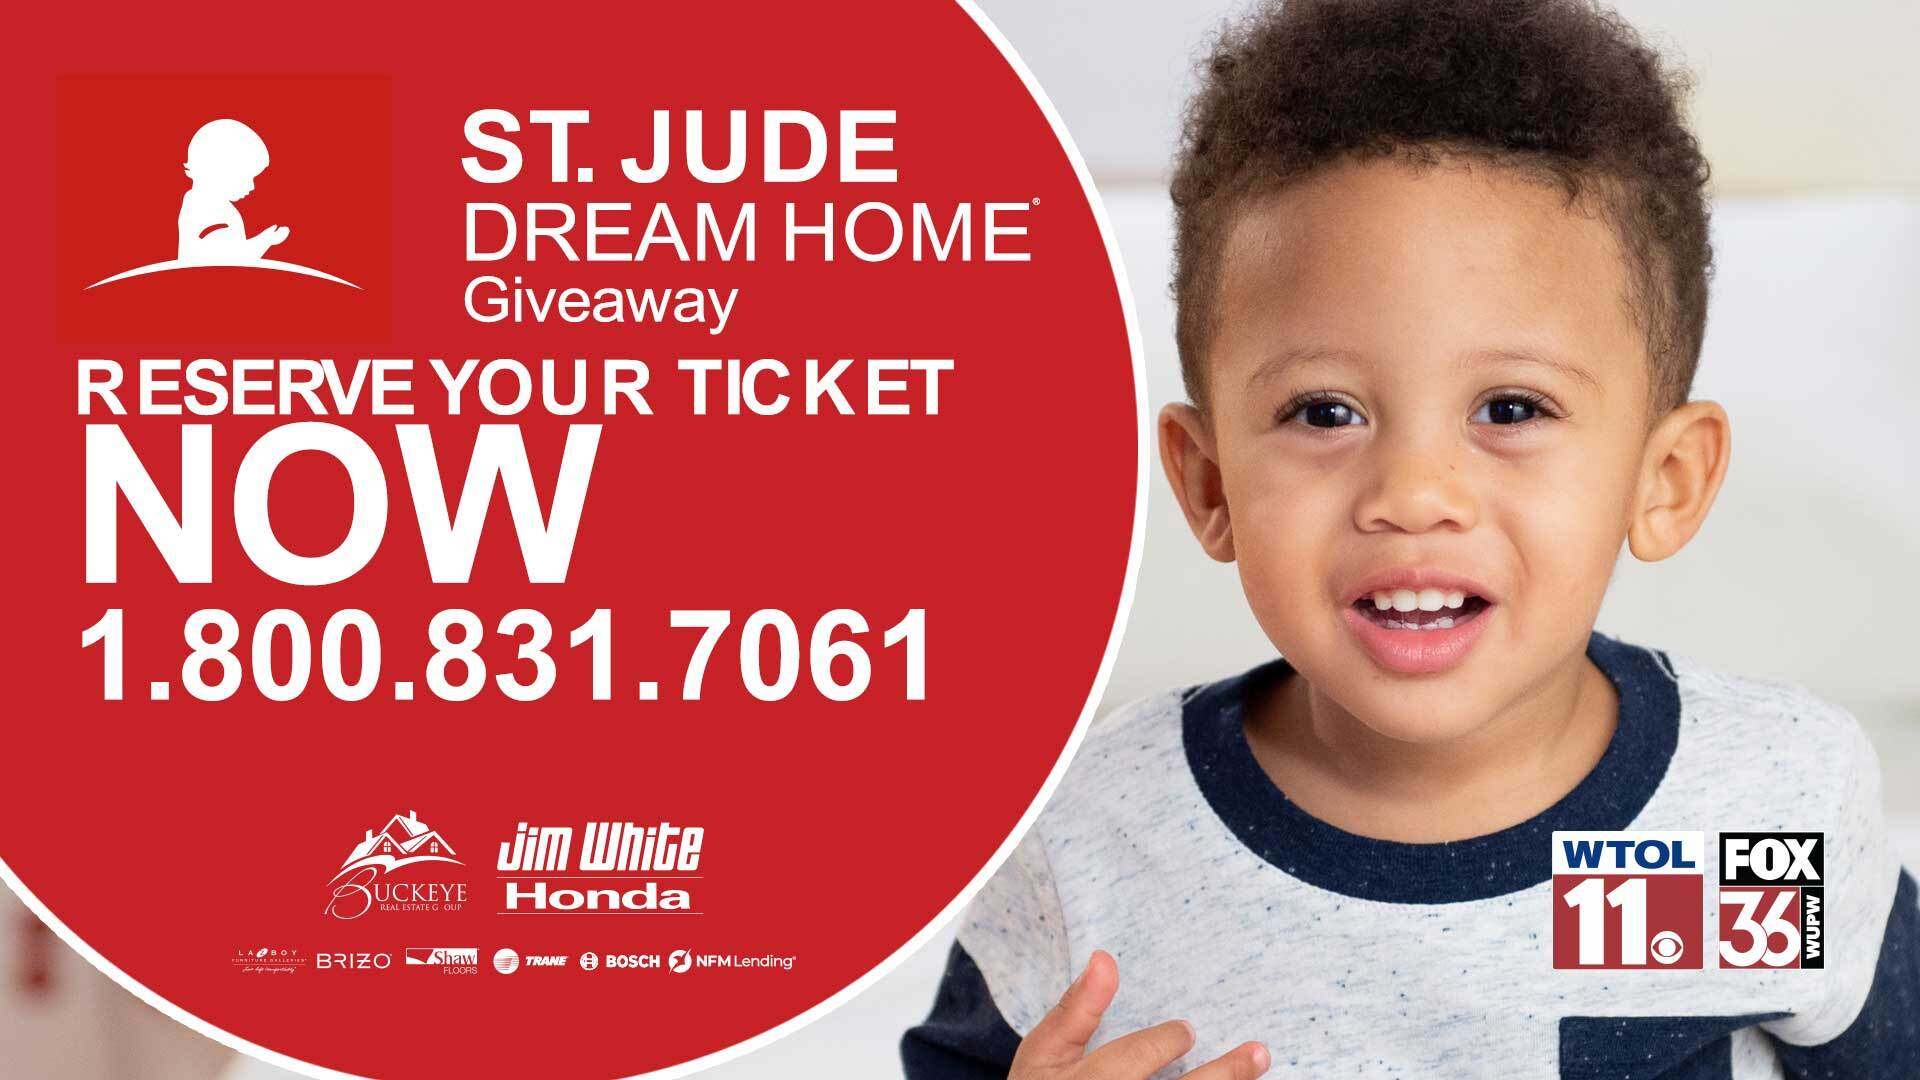 St. Jude Dream Home 2021 | GOING FAST! Reserve your ticket for a chance to win now